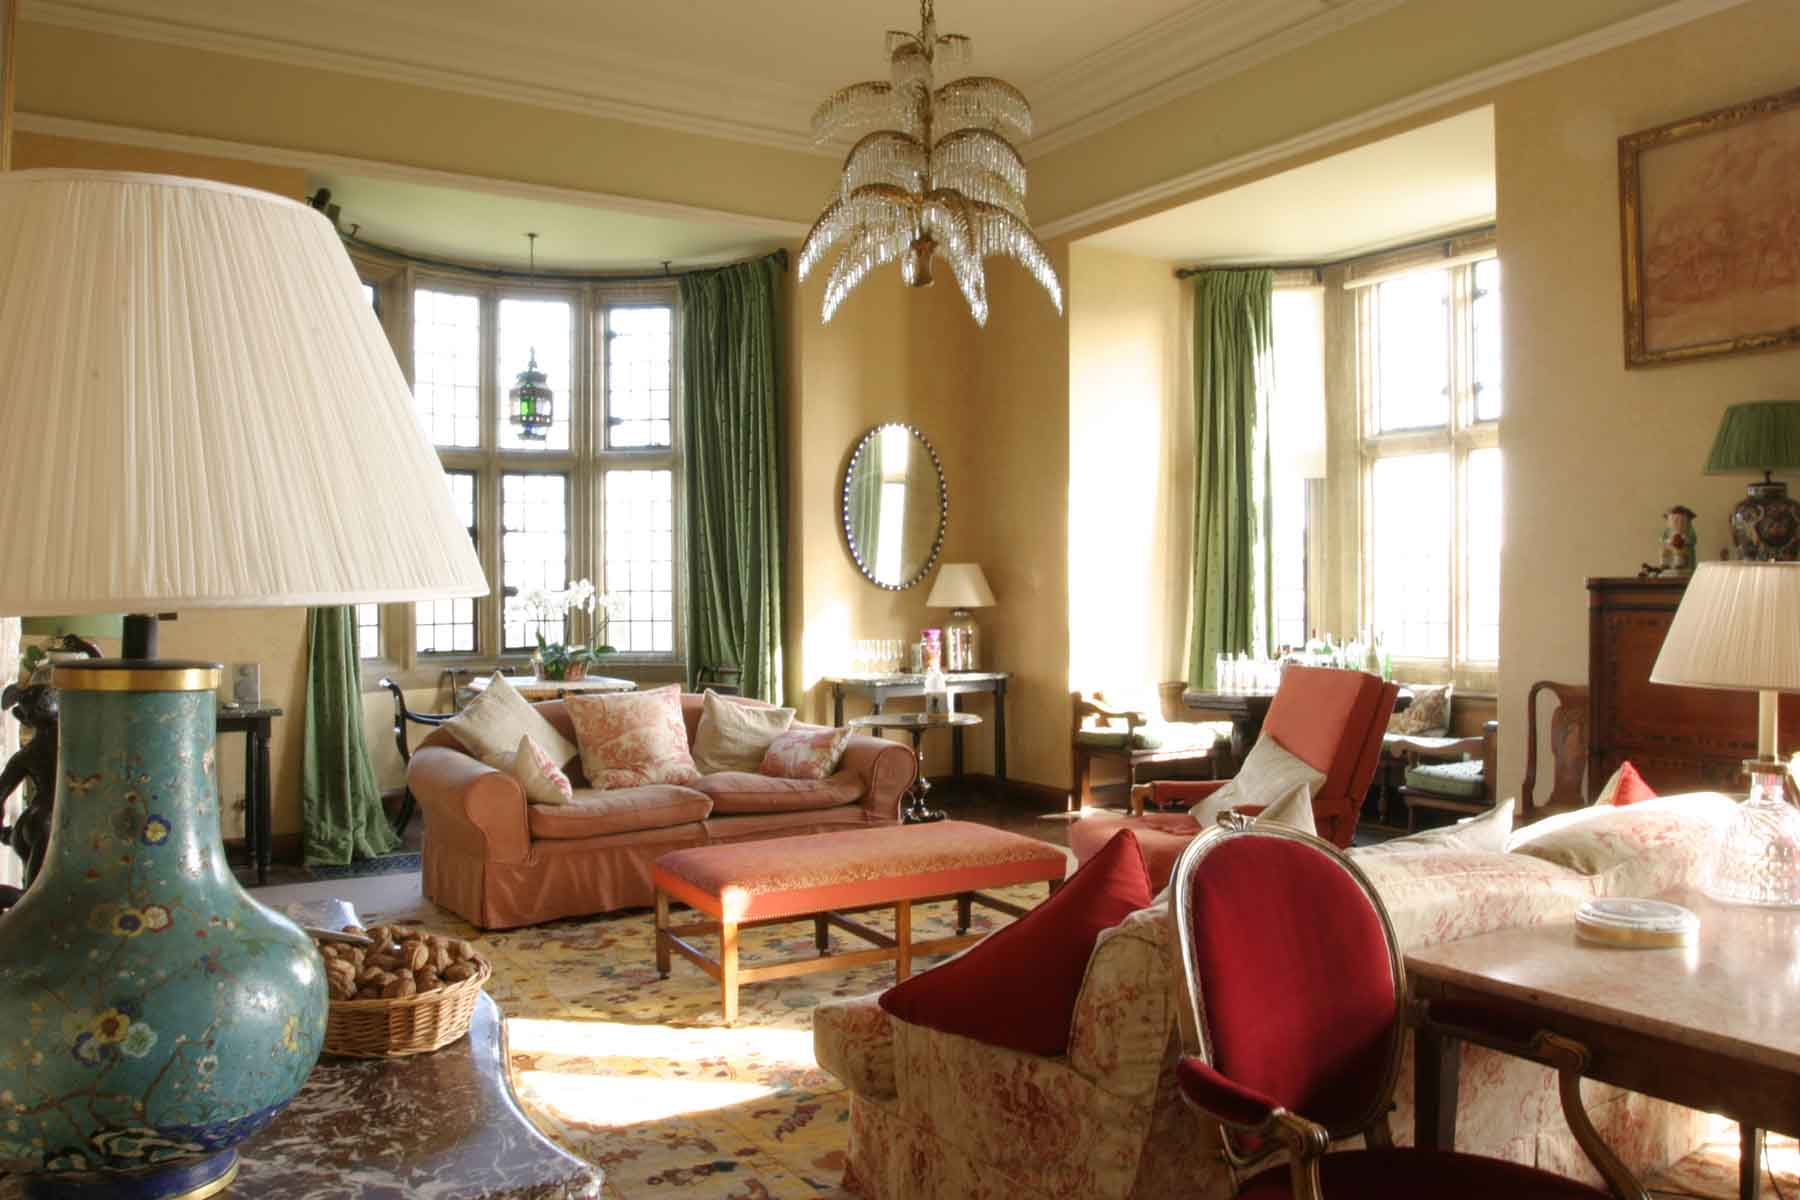 Carol_Fulton_Photography_traditional_interiors_ Chilham_Castle_037.jpg